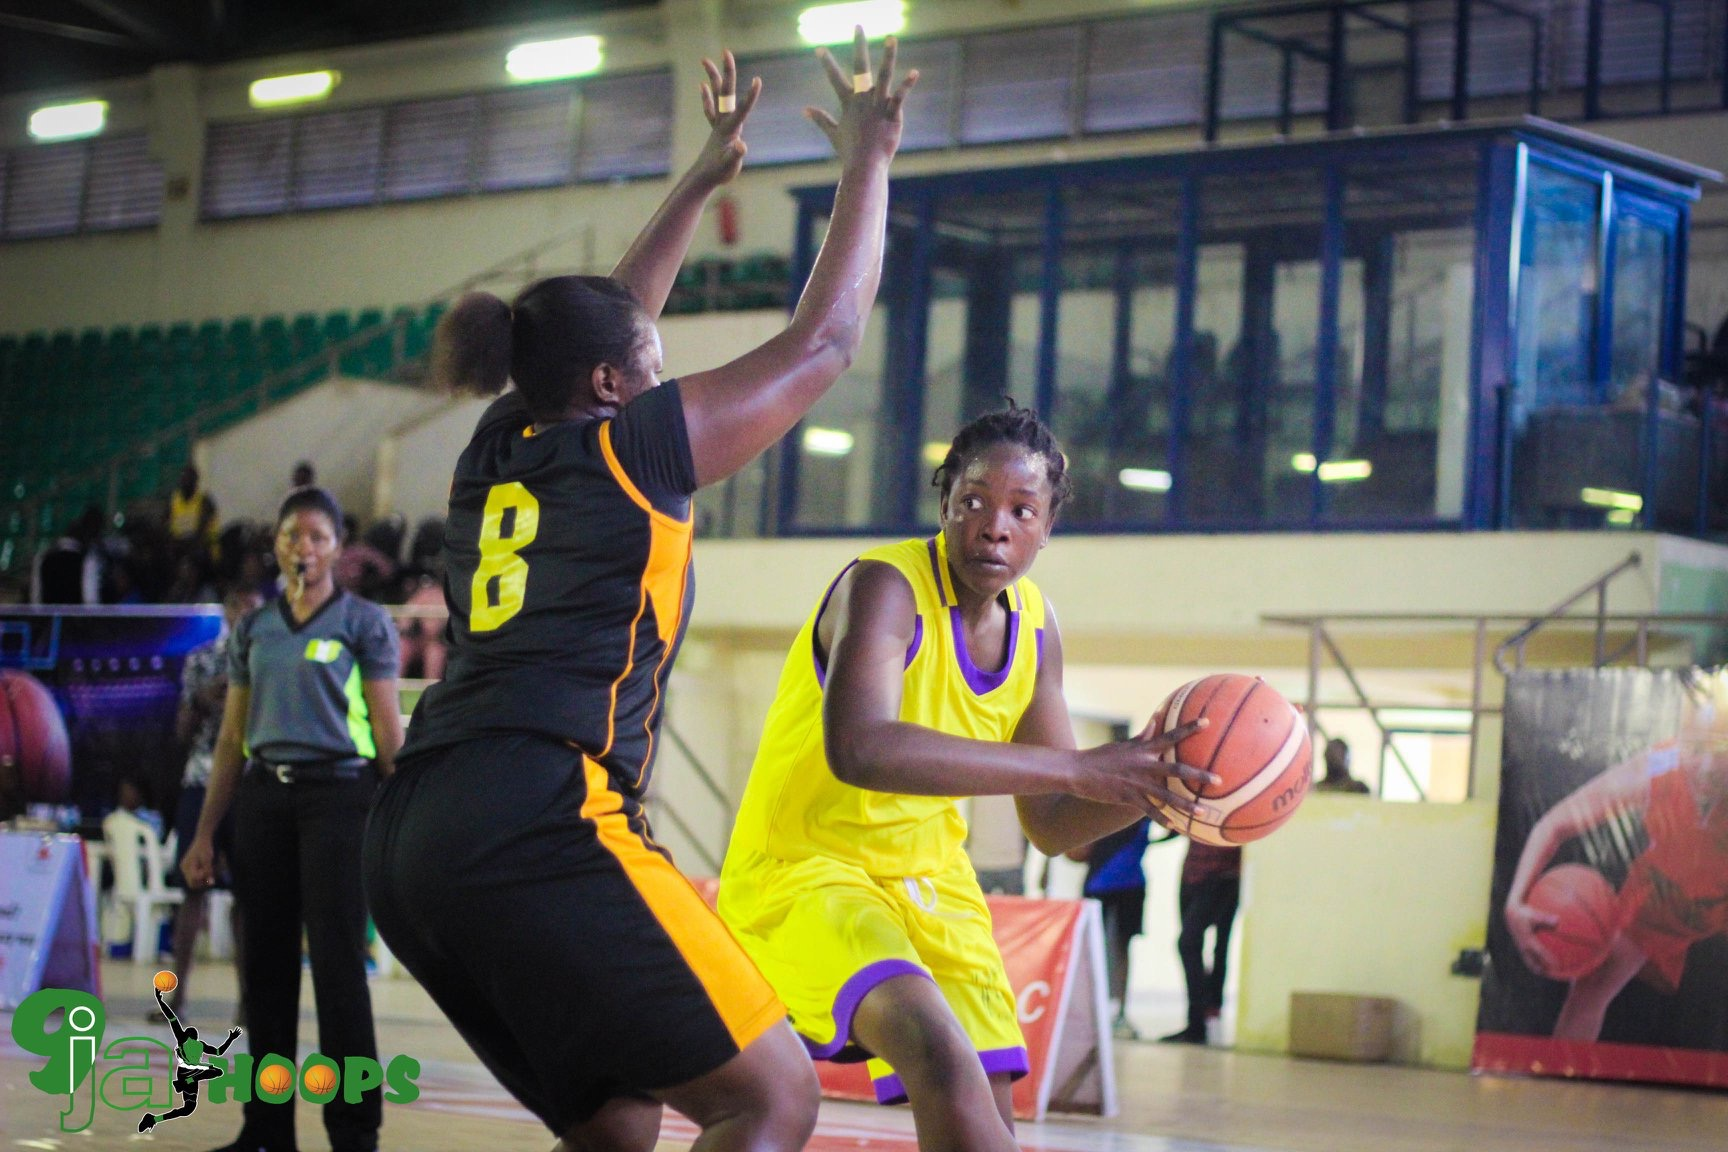 President Cup National Final 8 to hold Nov 12